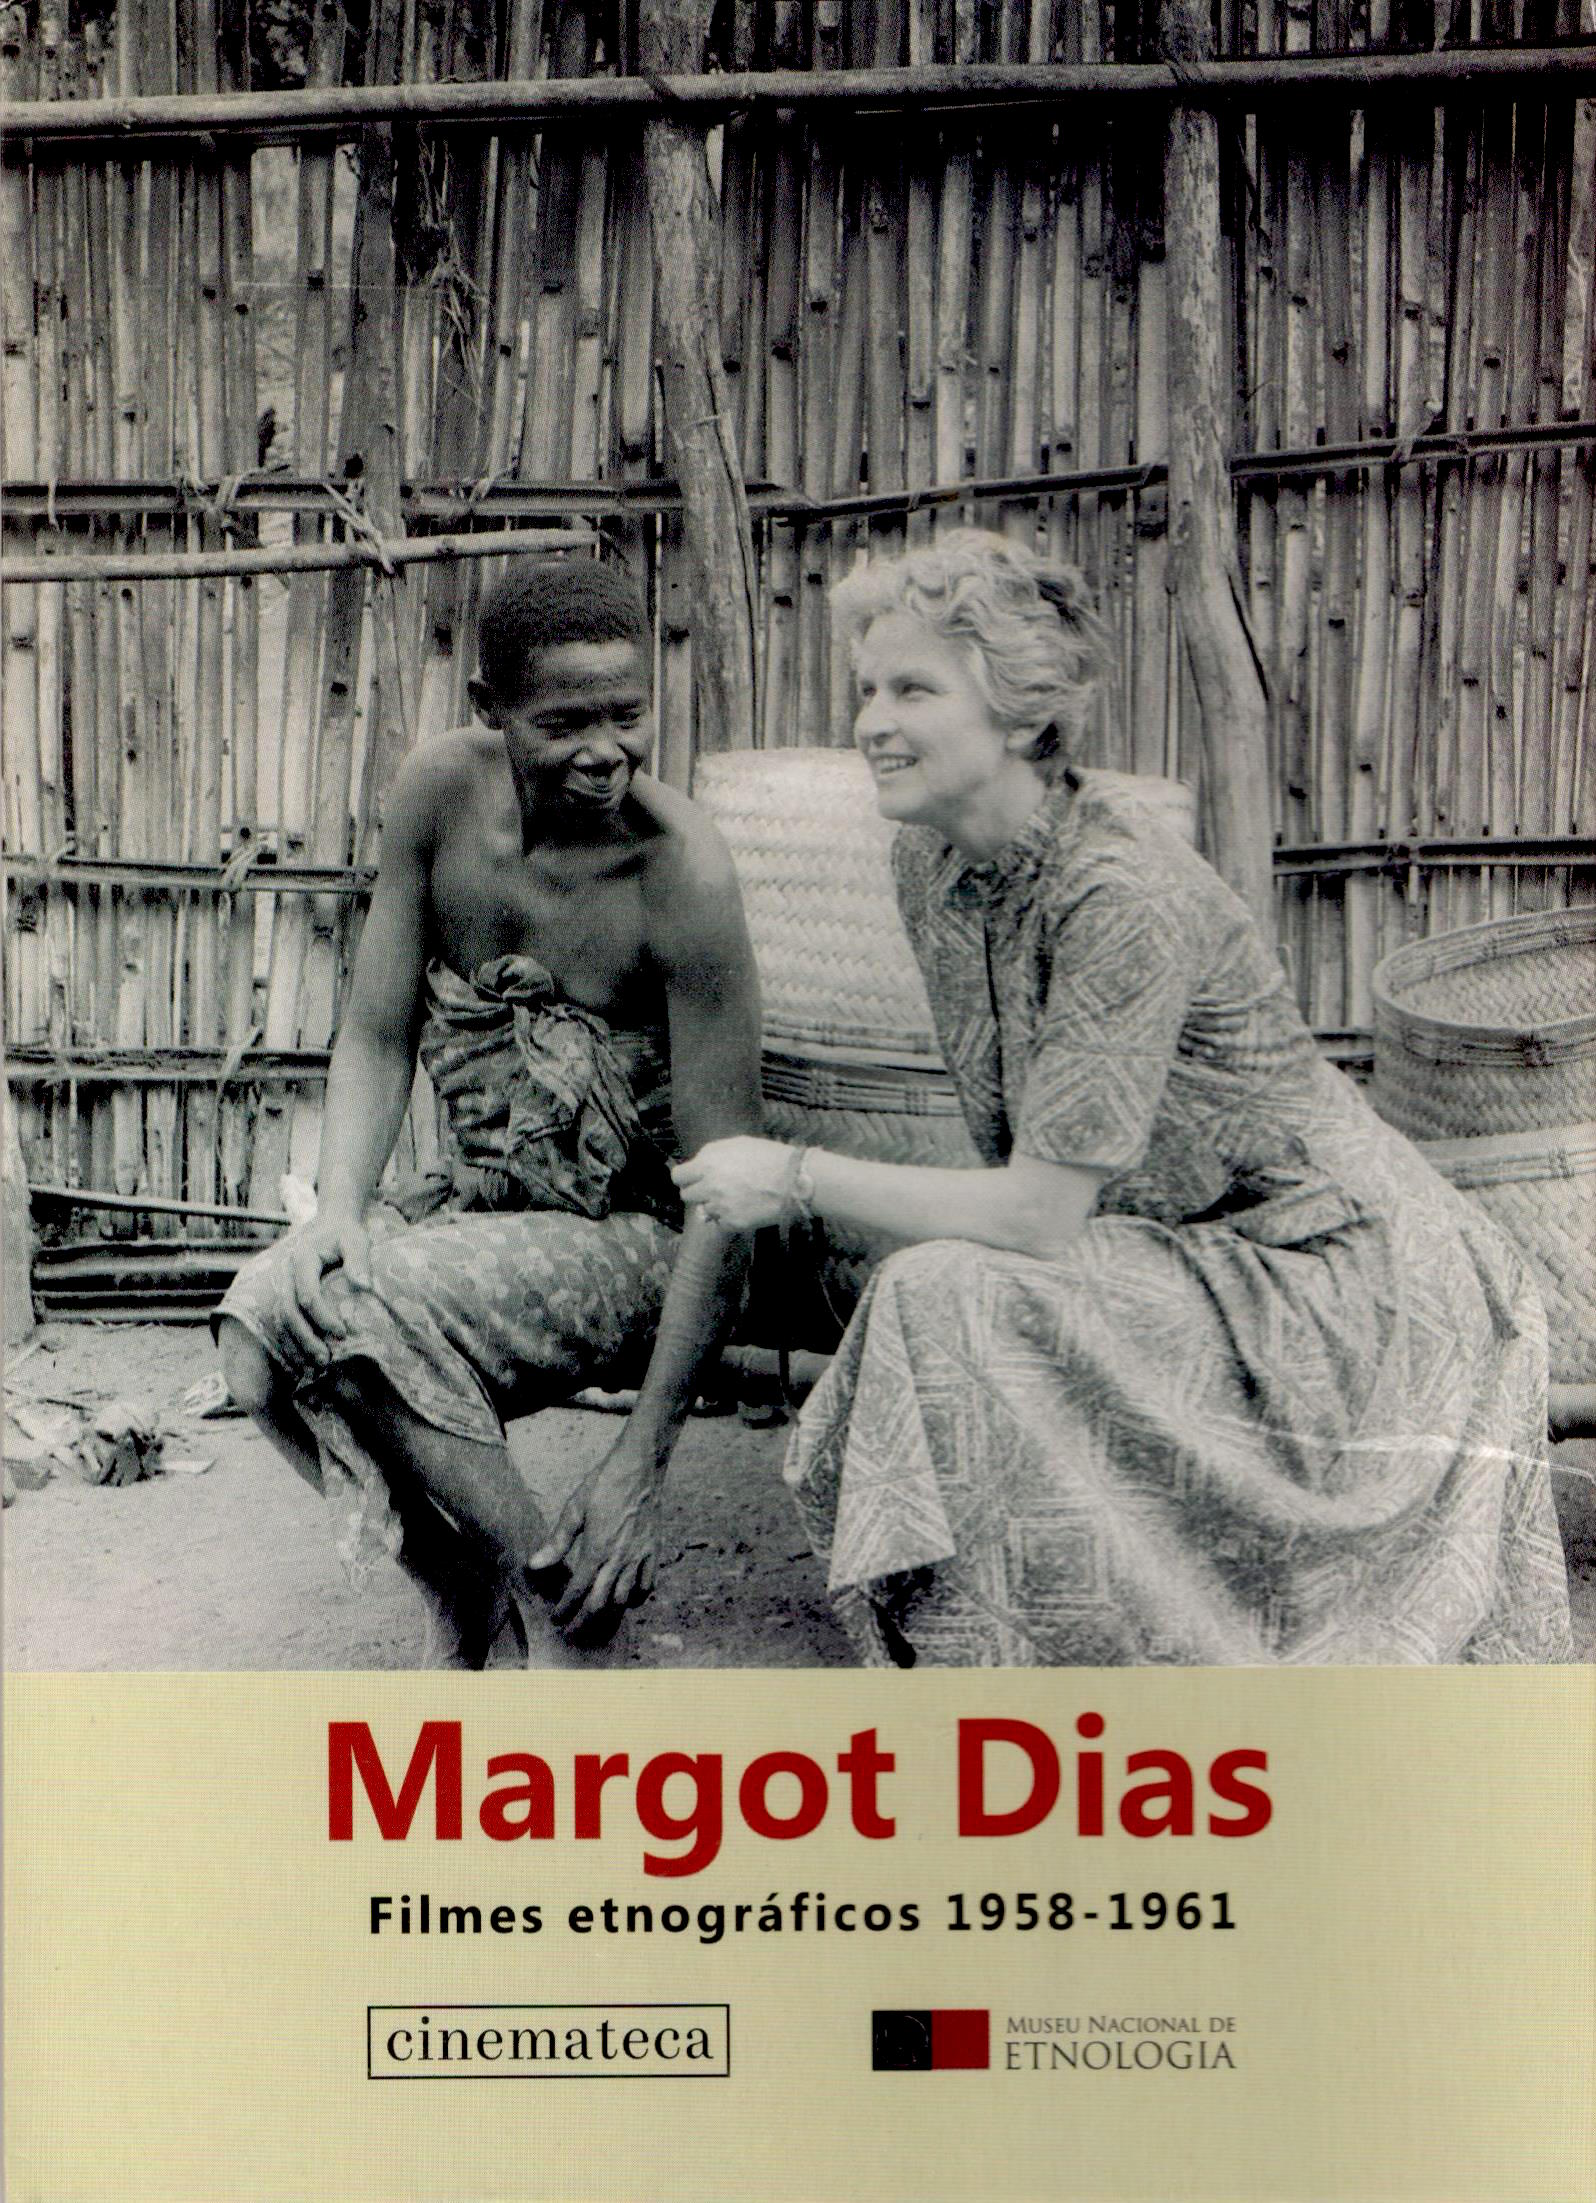 Copy of Margot Dias image